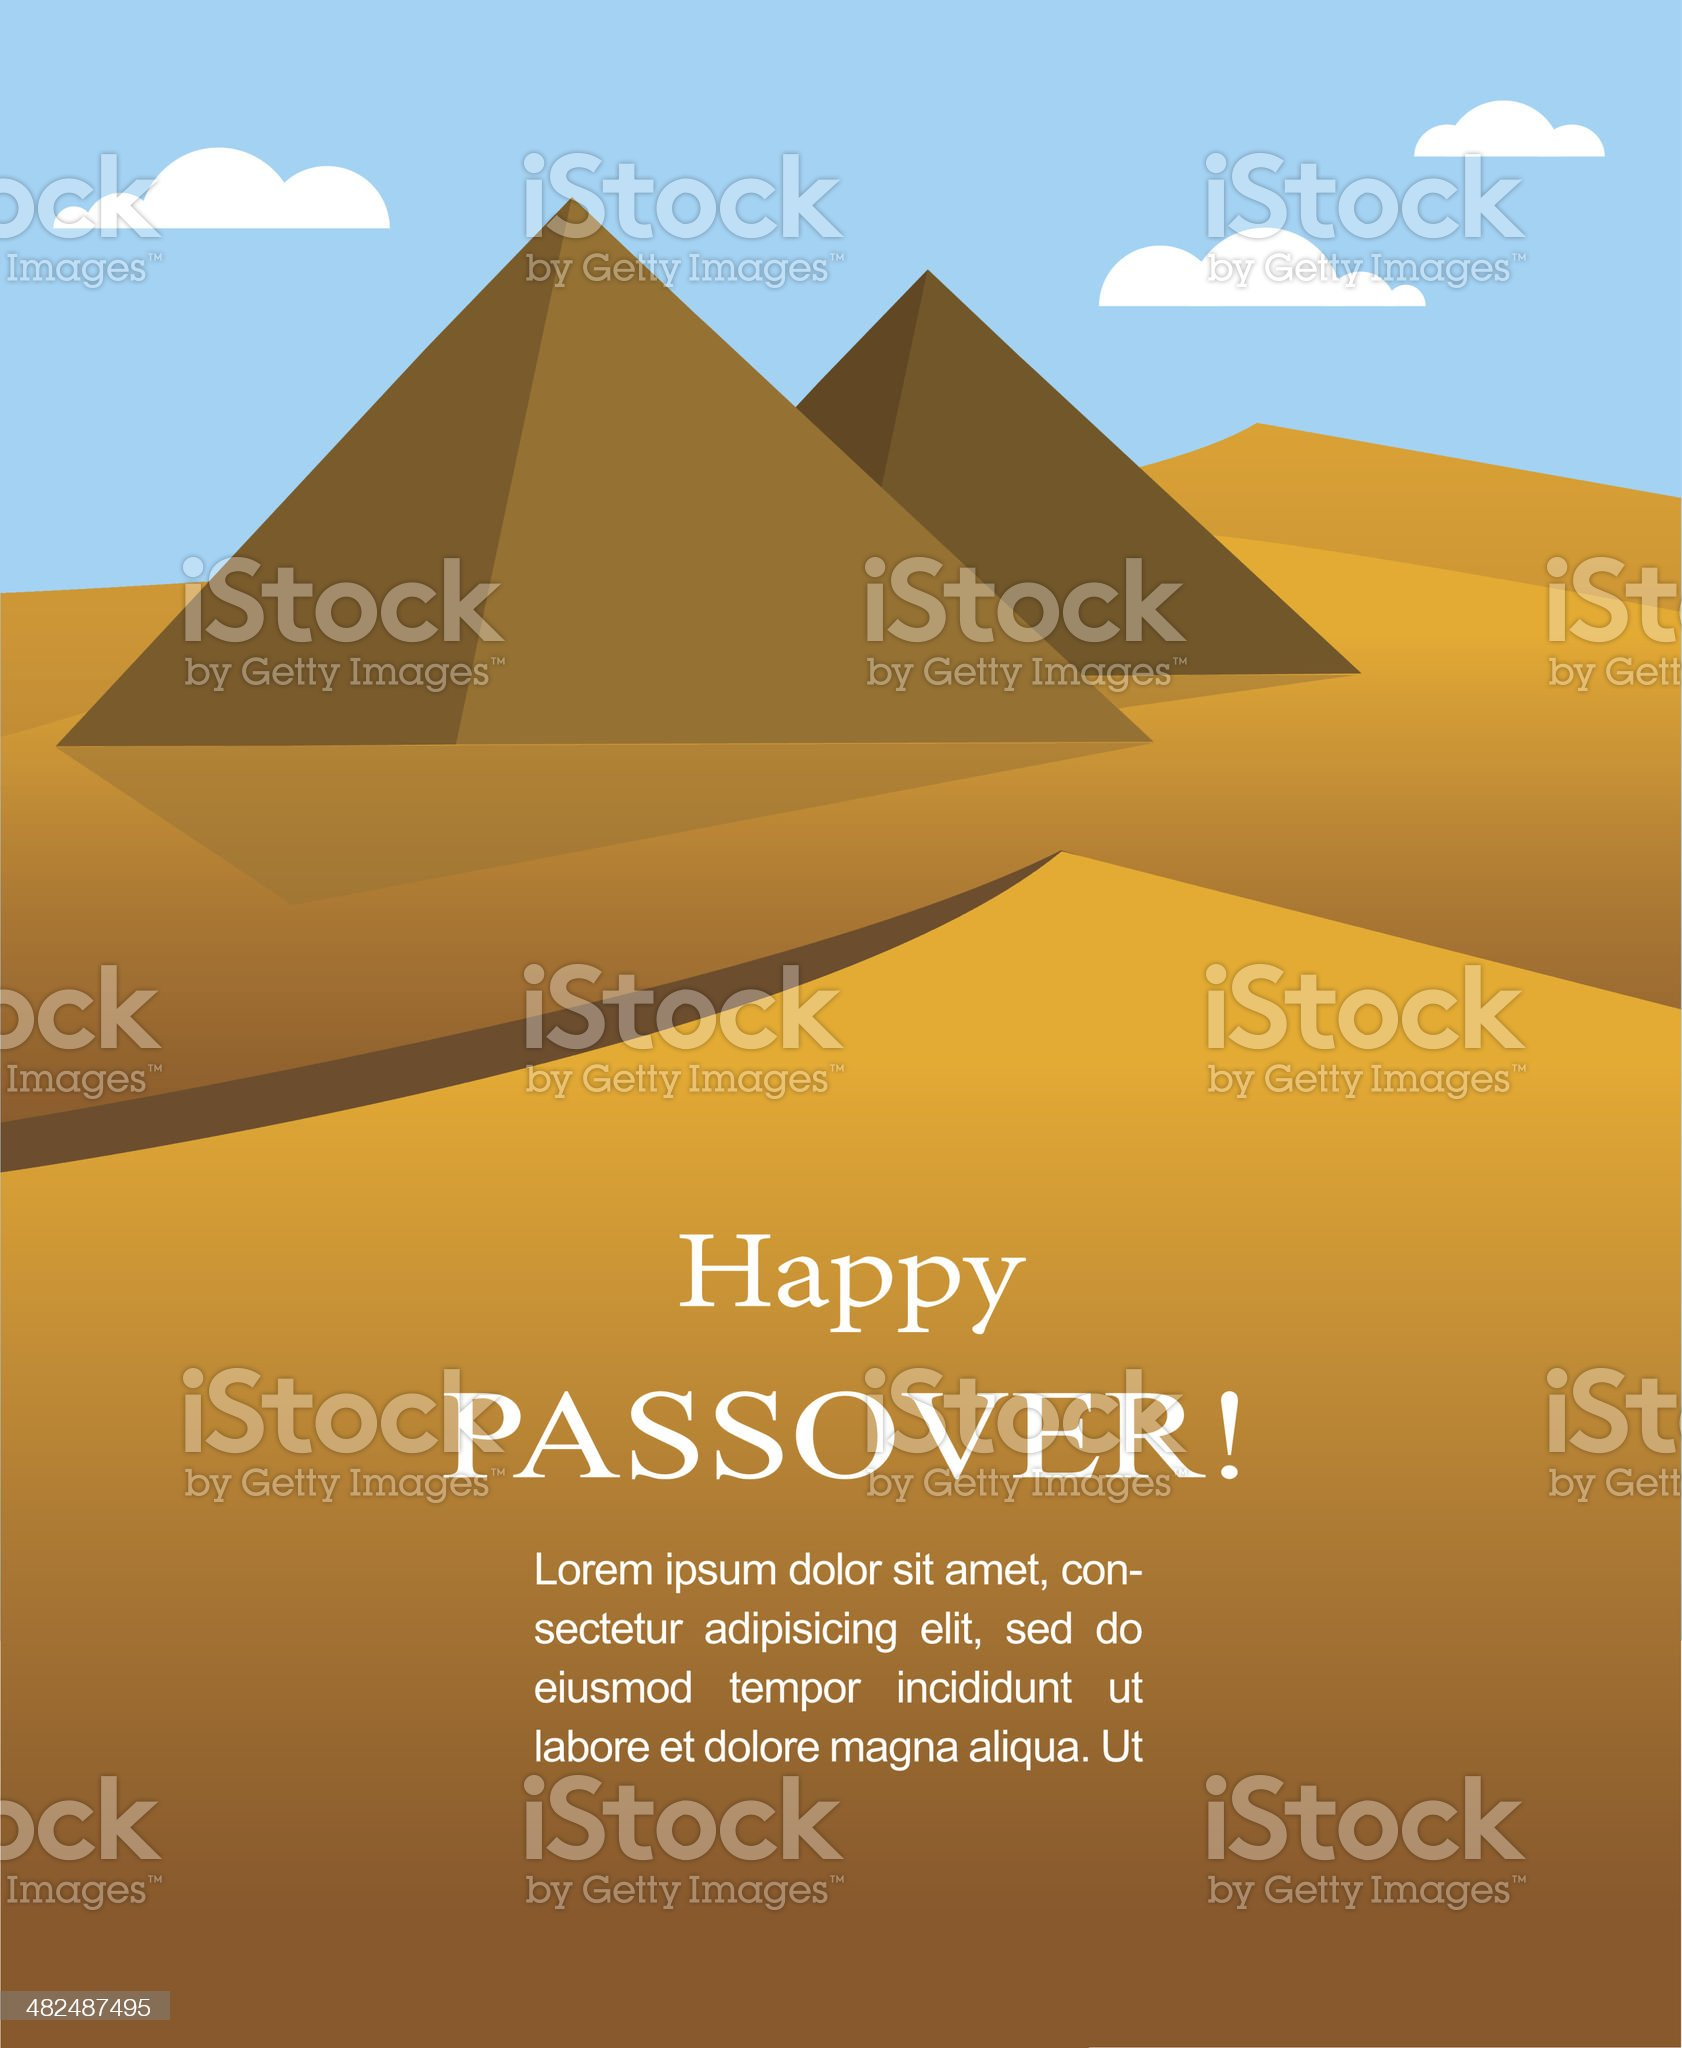 happy Passover- Out of the Jews from Egypt royalty-free stock vector art